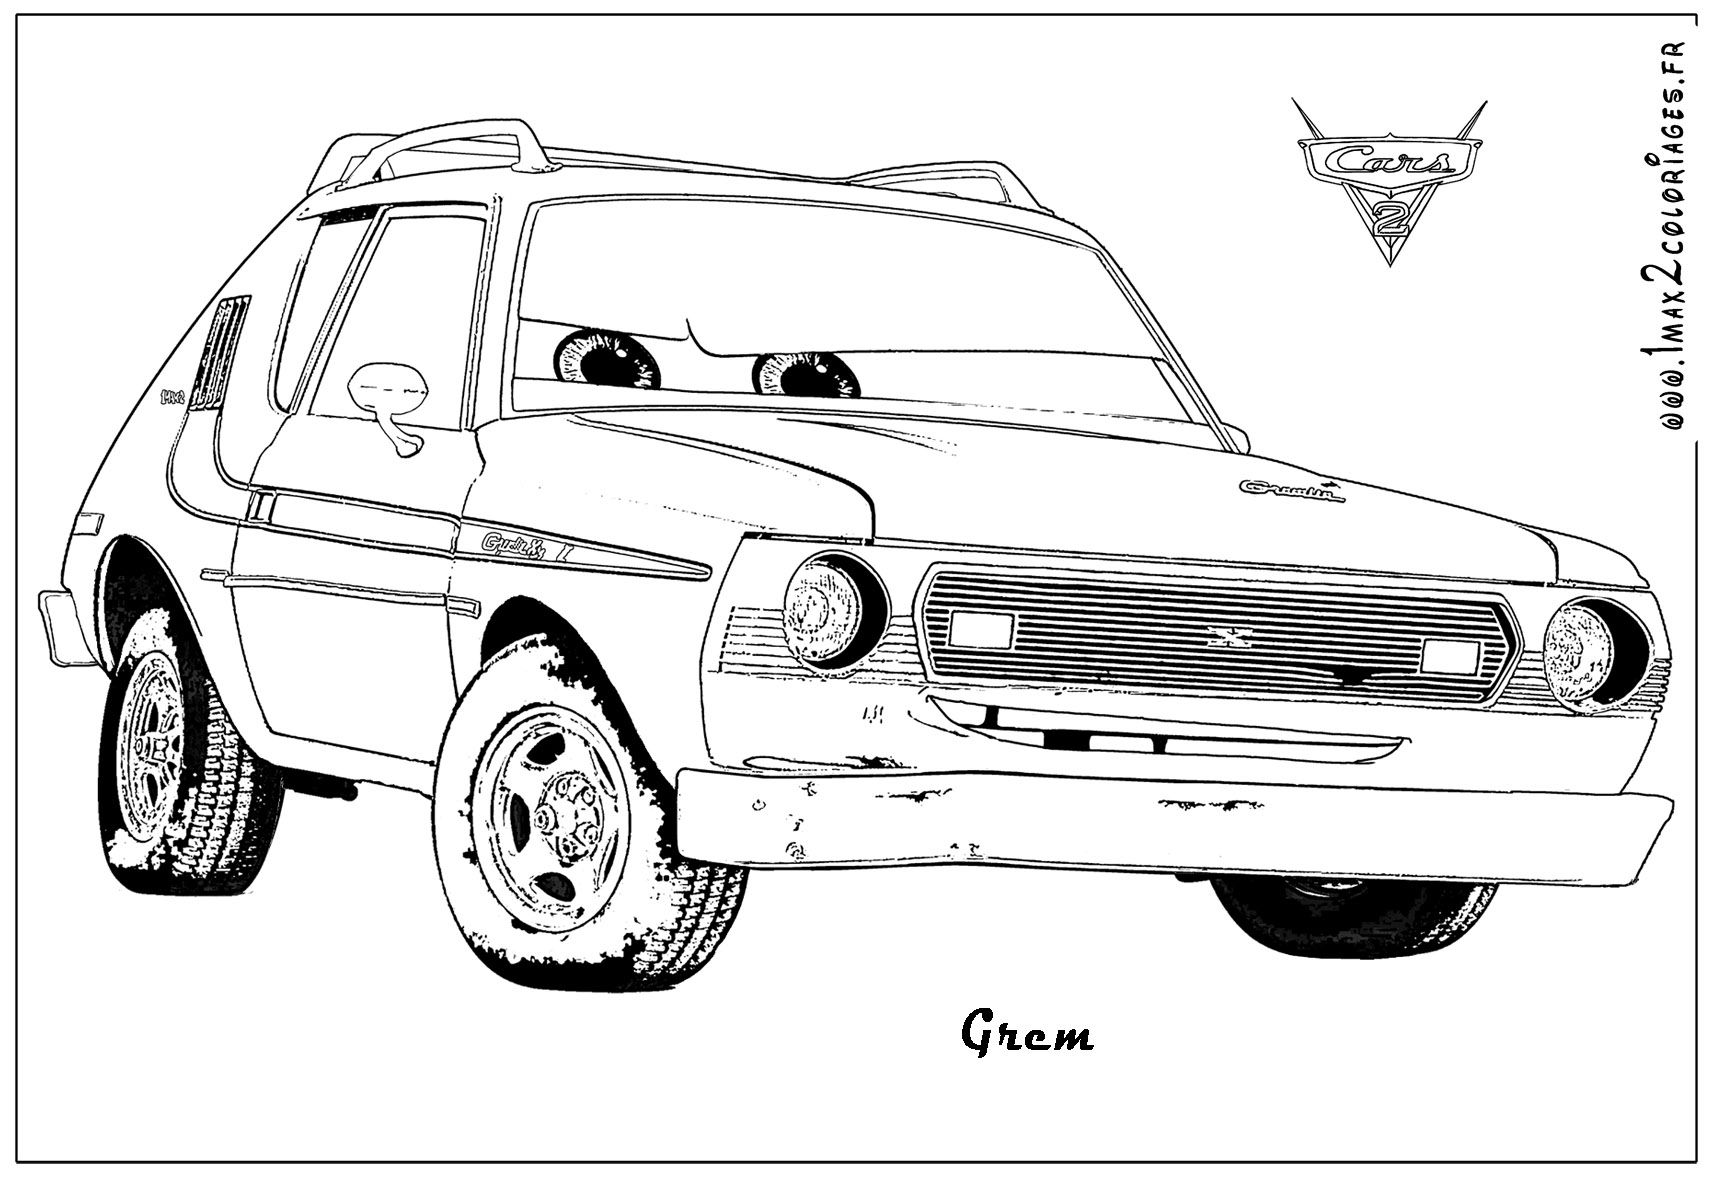 disney cars 2 colouring pictures to print coloring pages for boys cars printable coloring home disney print 2 to cars colouring pictures